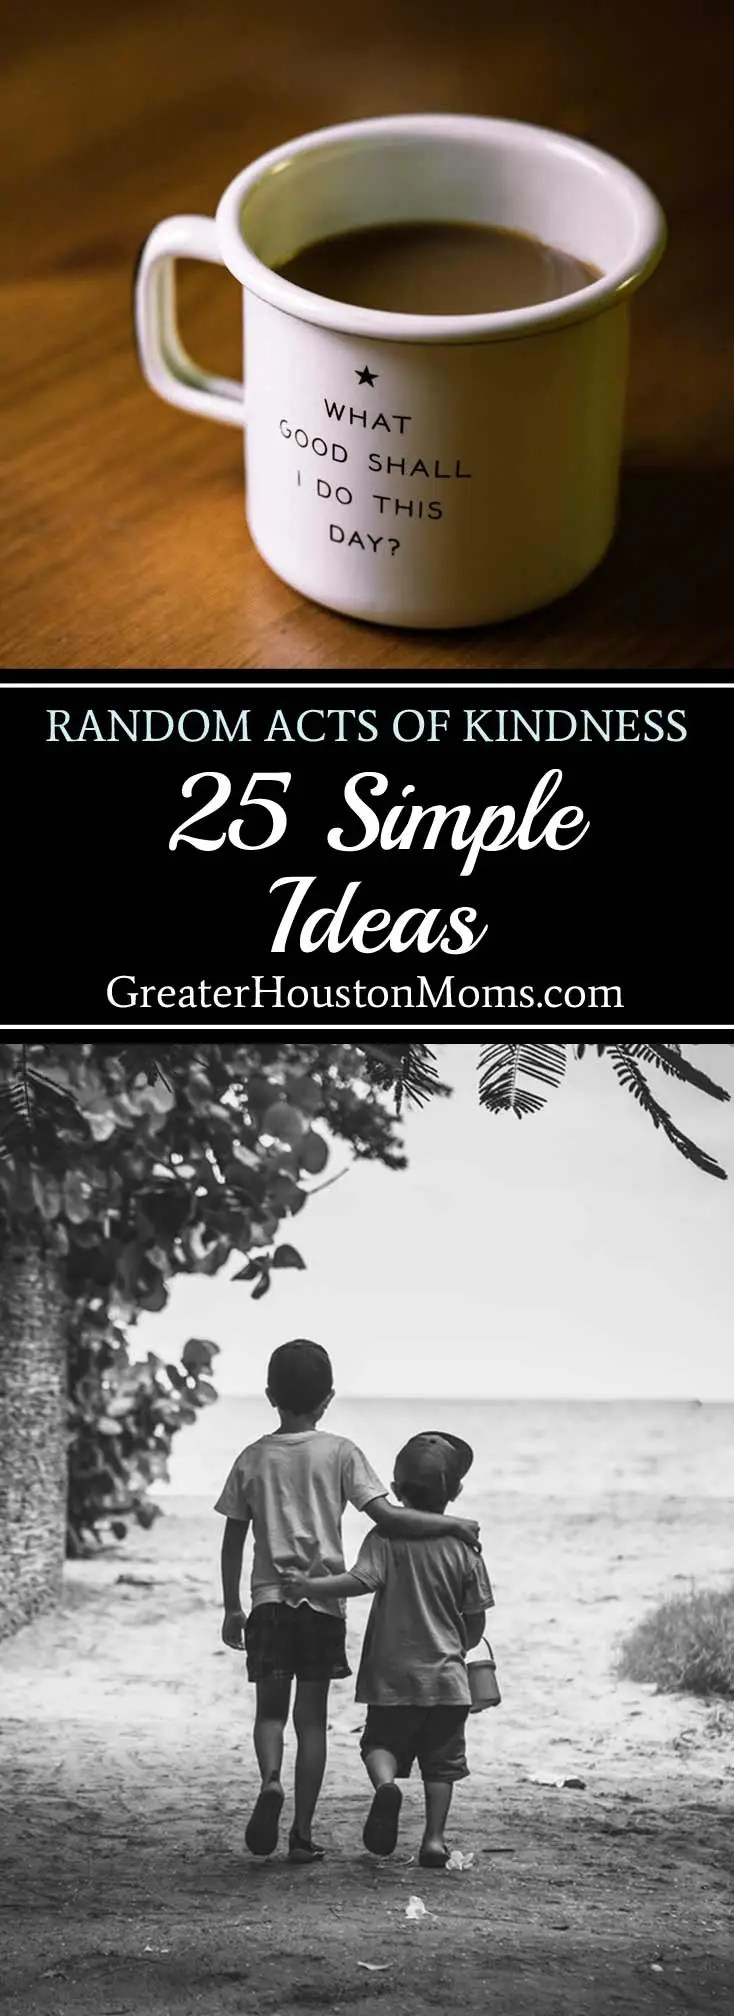 25 Simple Ideas for Kindness